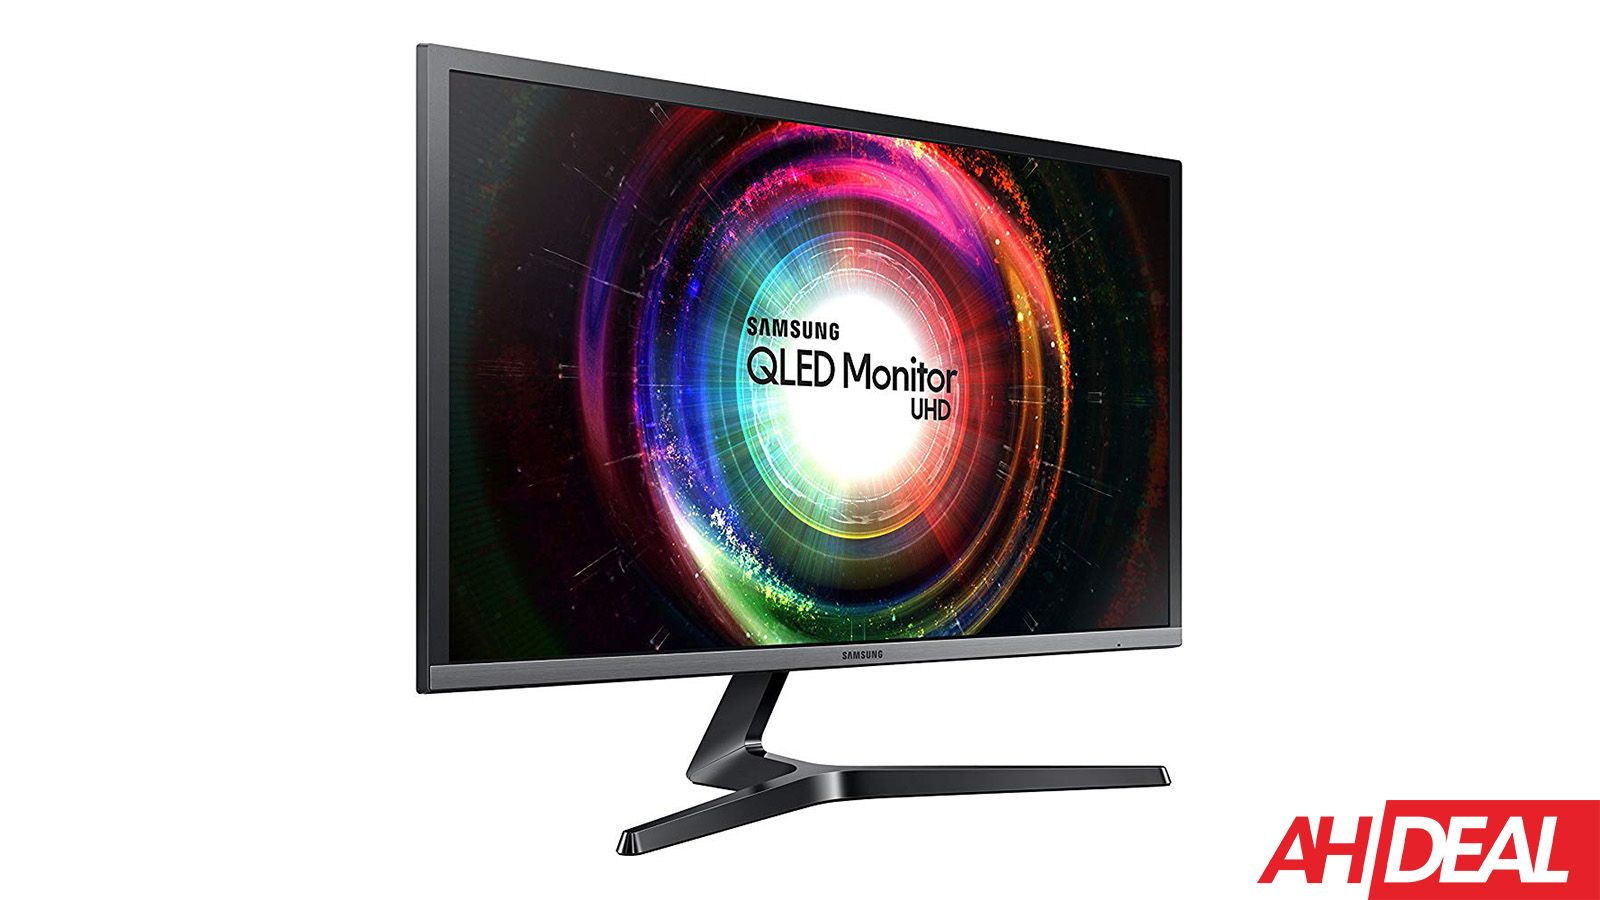 Samsung Uh750 28 4k Monitor At 329 Lowest Price Ever Amazon Black Friday 2018 Deals Blackfriday Blackfridaysale Blackfriday Monitor Samsung Lcd Monitor